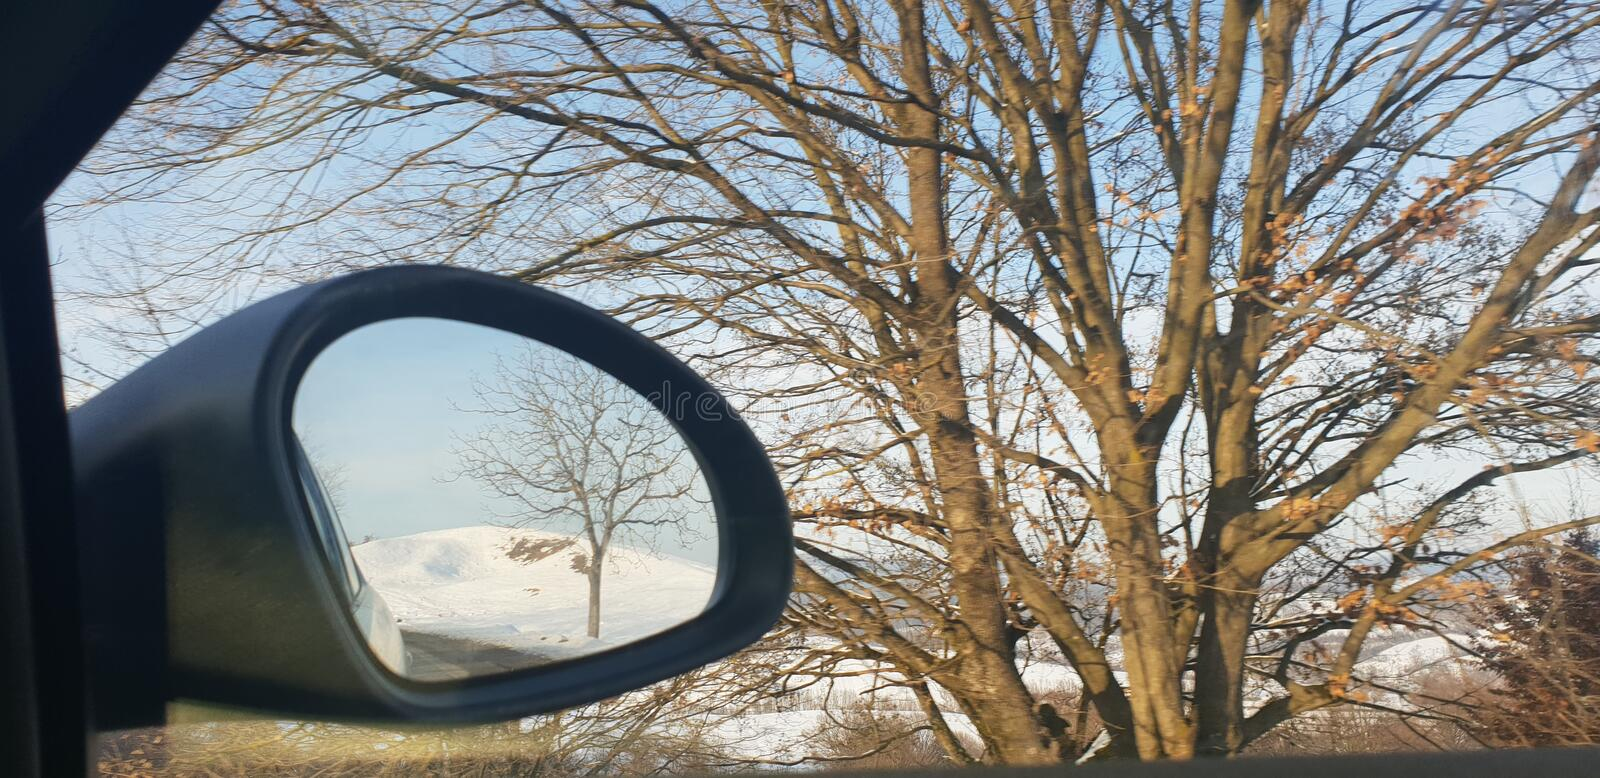 Winter road in early 2019 from cluj county to timisoara city highway  and rural road. Winter road early 2019 clun cluj county timisoara city highway rural royalty free stock photography